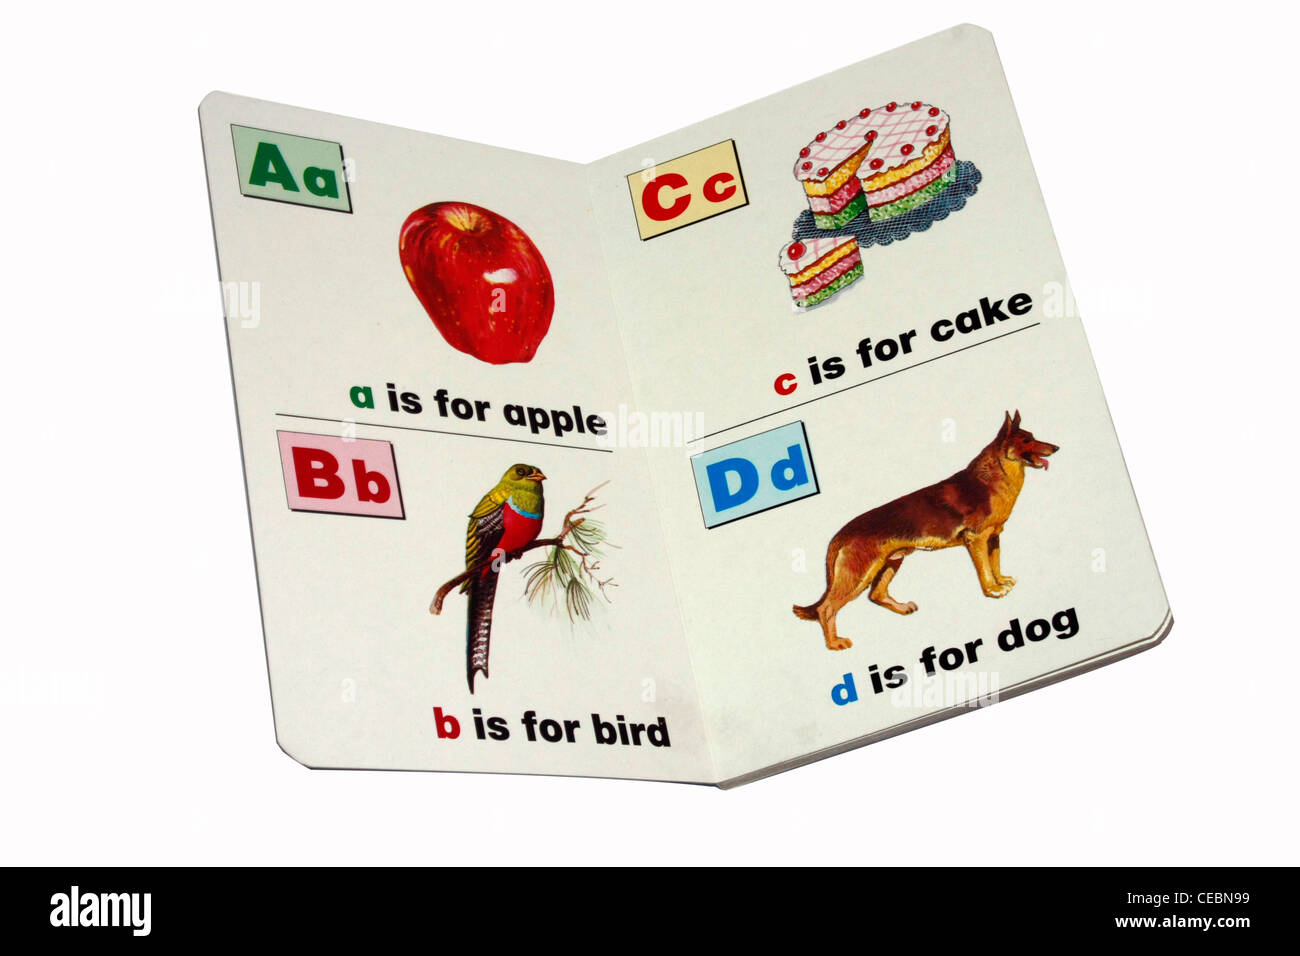 Nursery alphabet book for basic learning - Stock Image